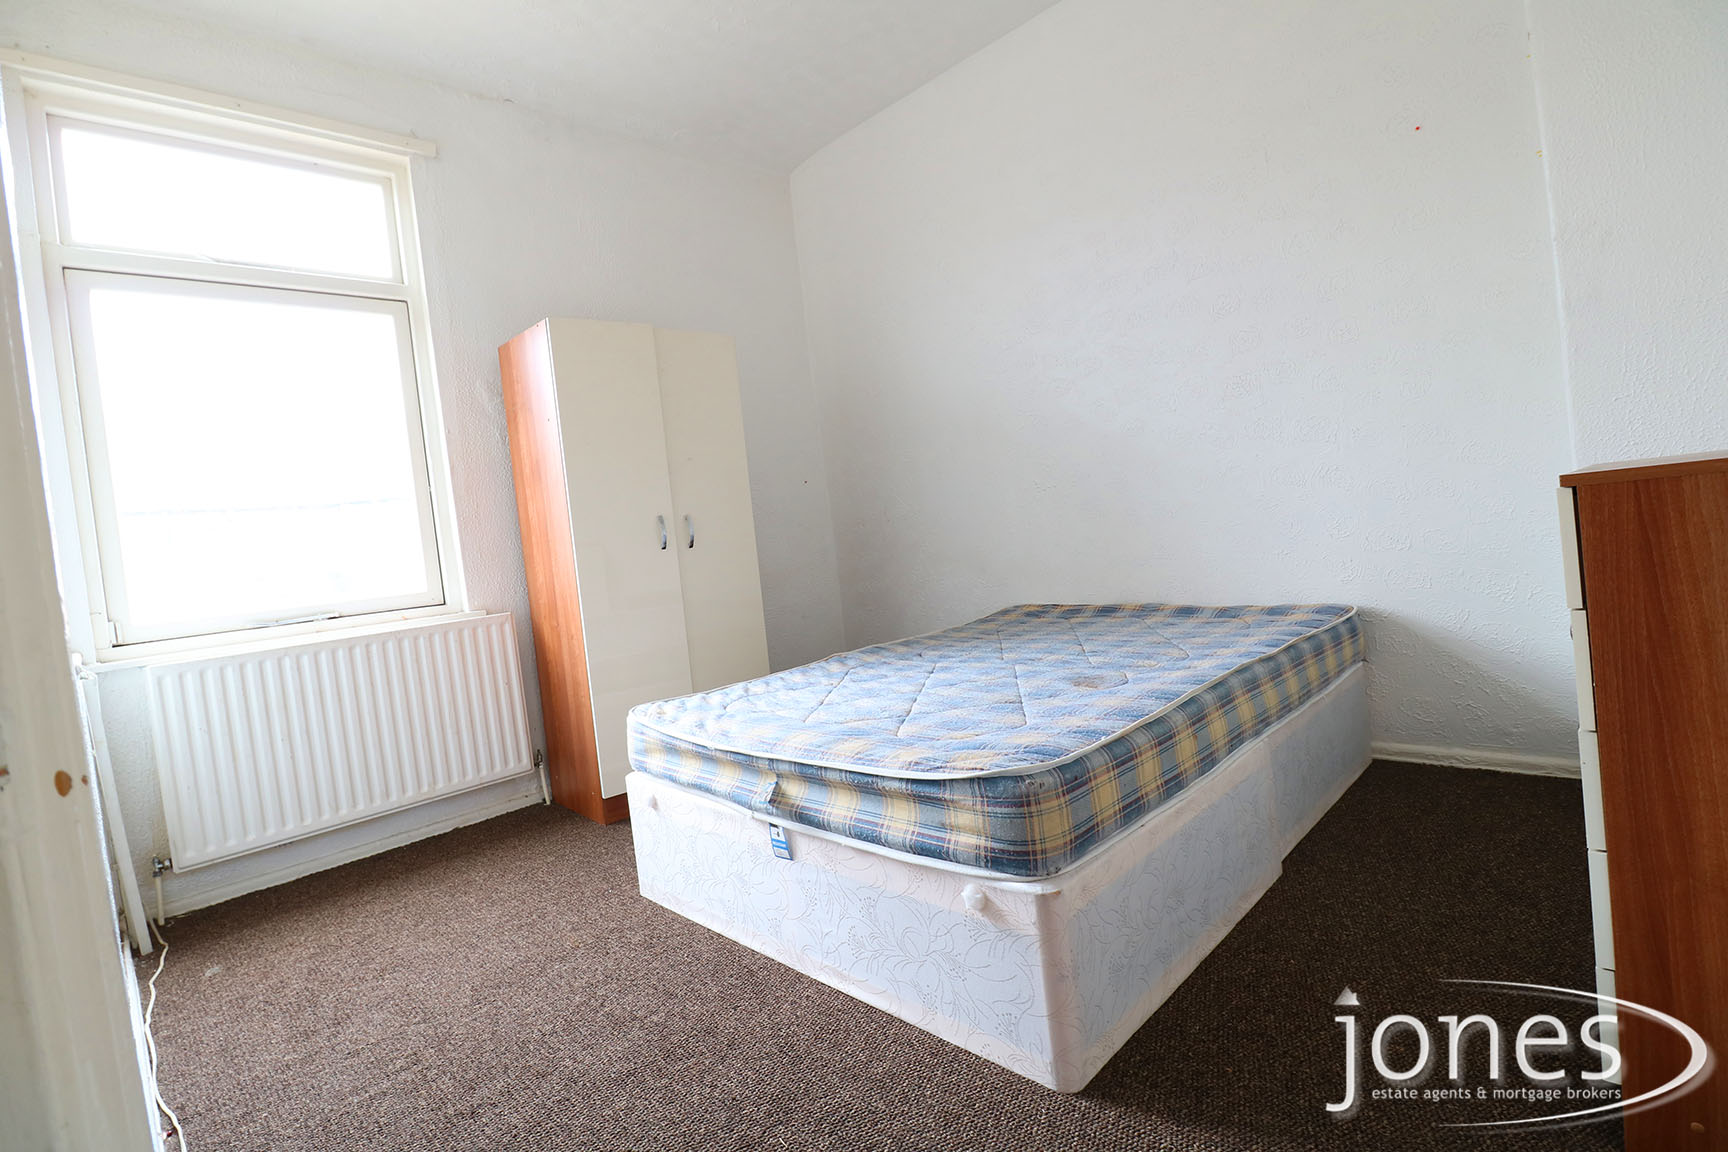 Home for Sale Let - Photo 05 Percy Street,  Middlesbrough, TS1 4DD